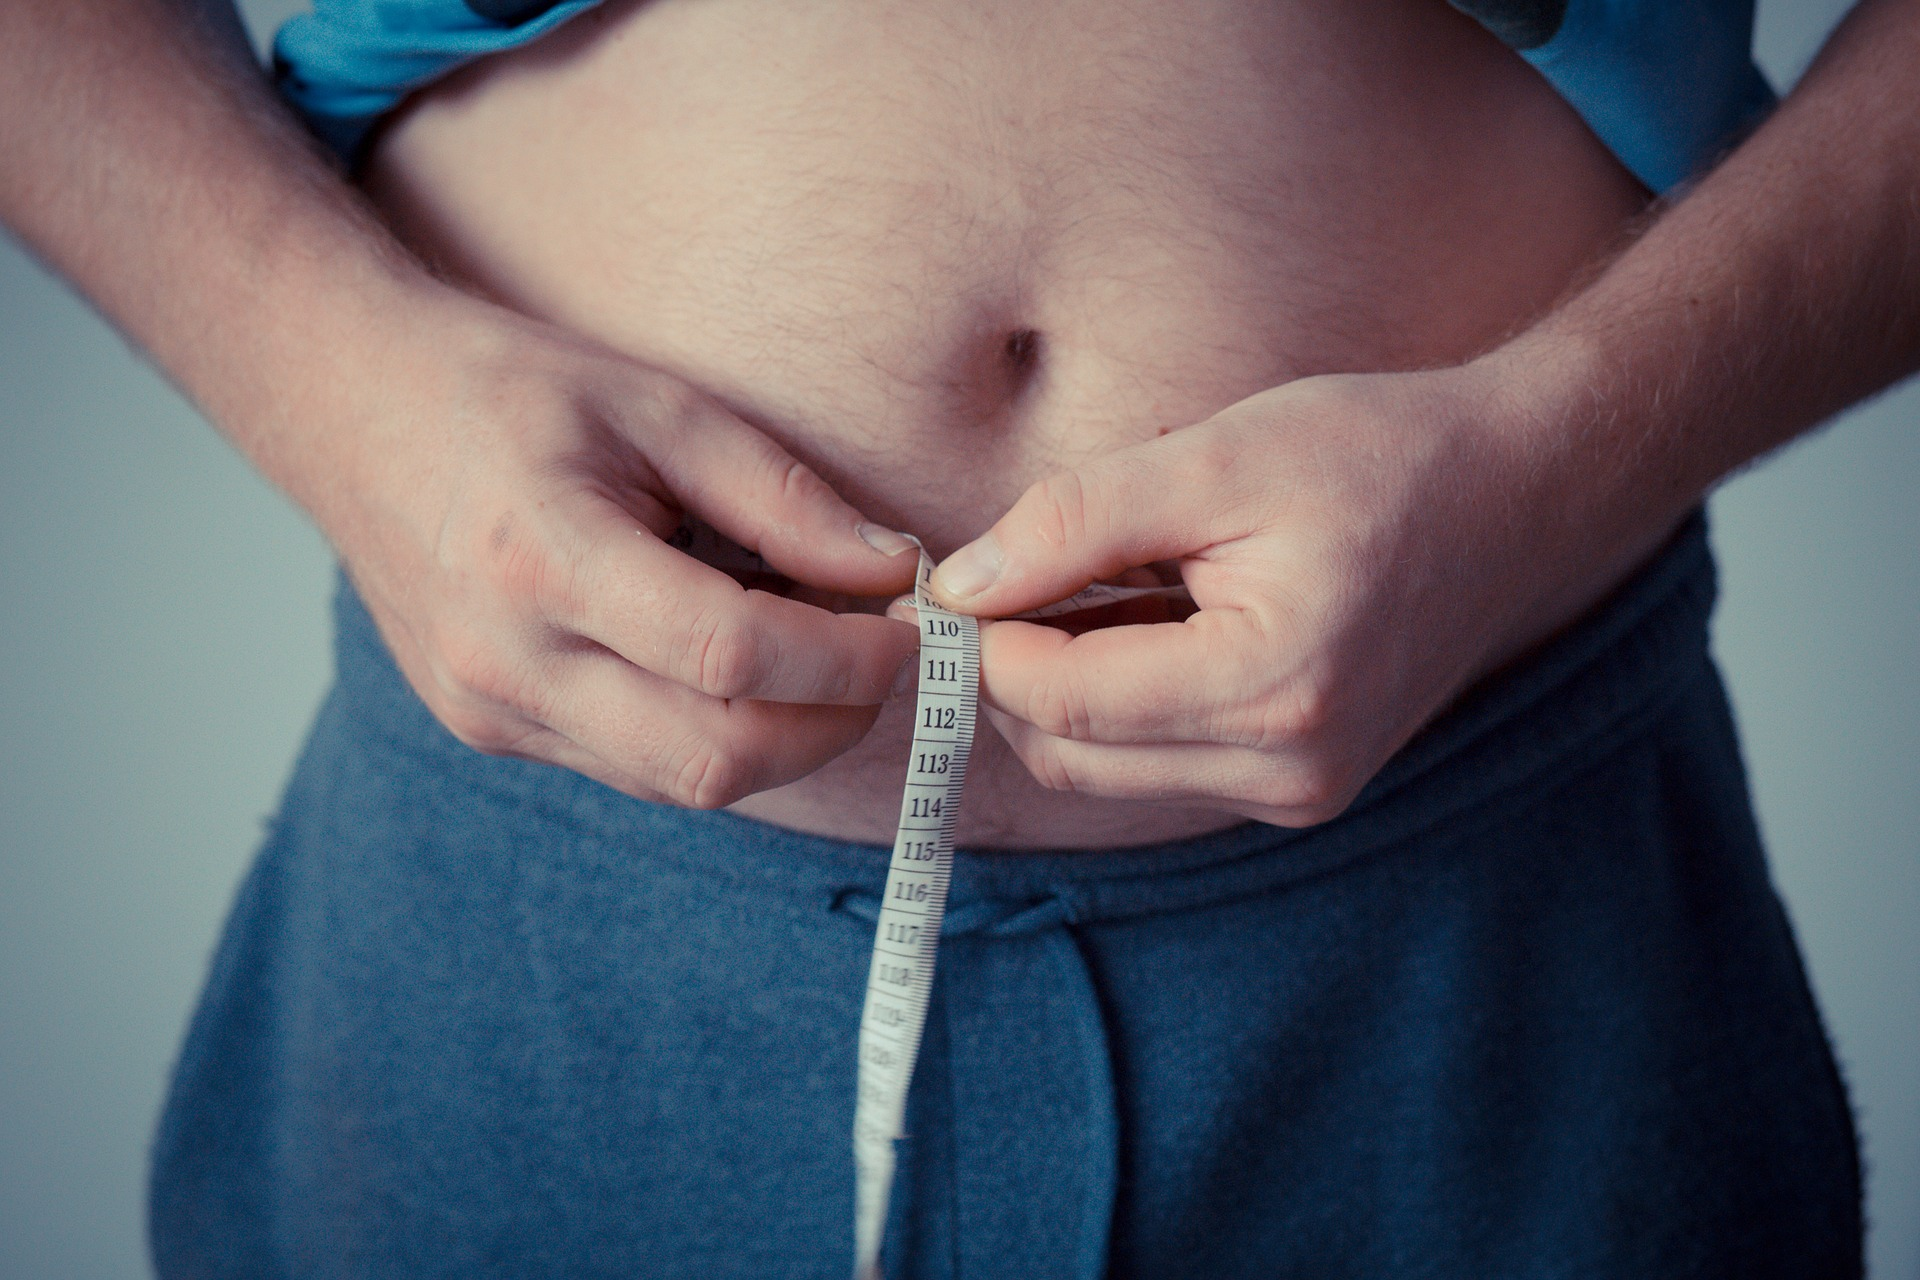 The Effect of Obesity on Pain